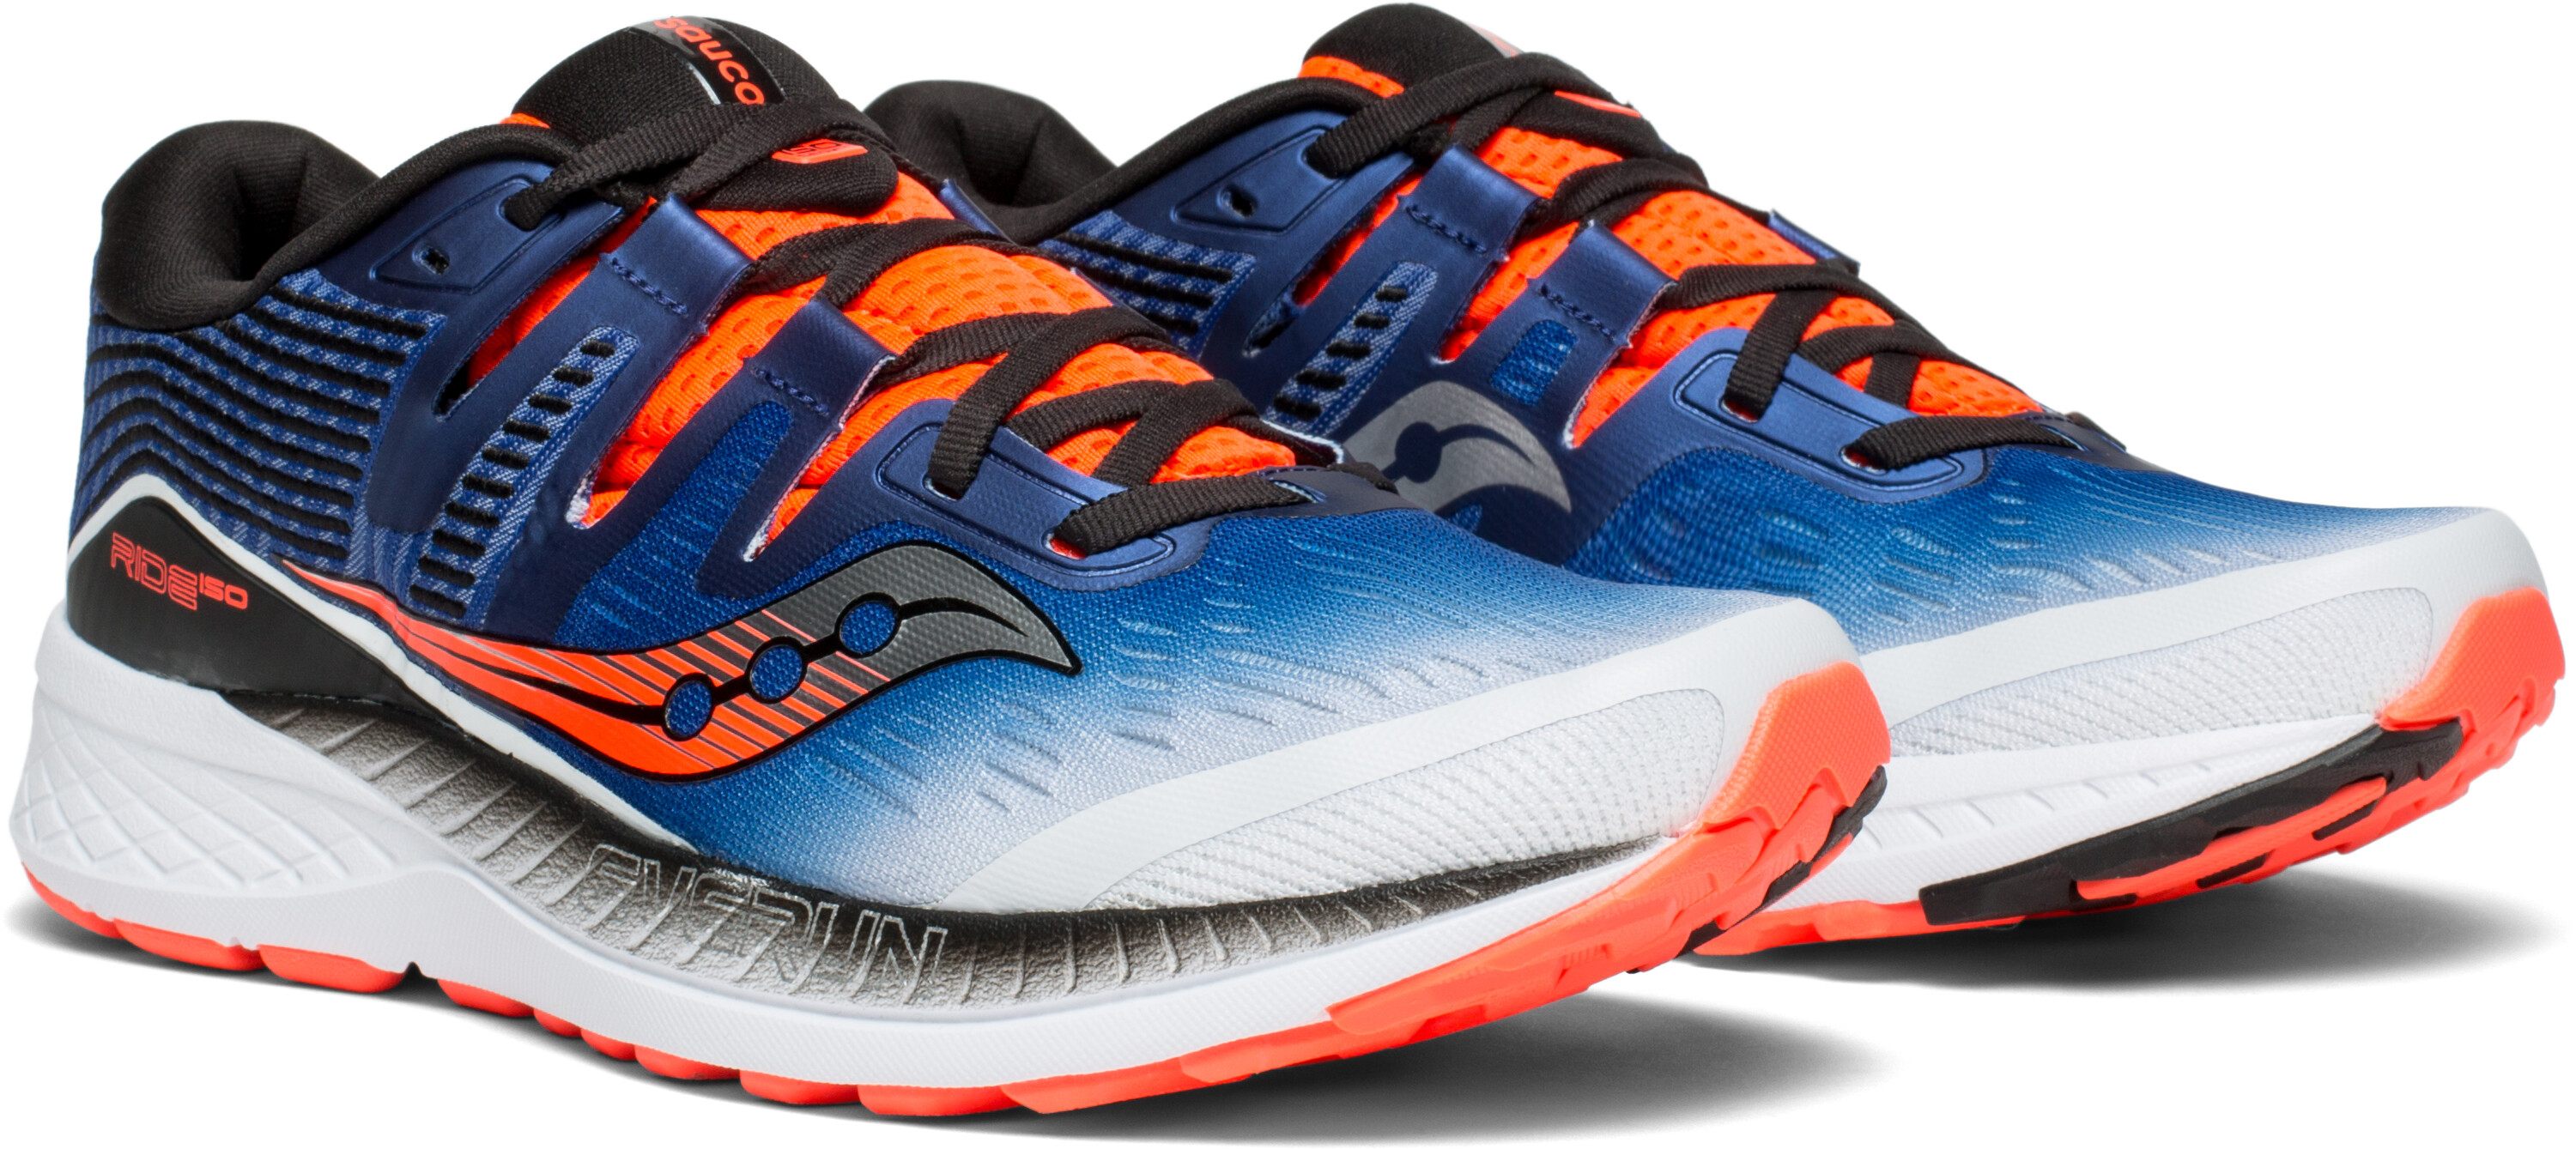 ce0a9d3fda46 saucony Ride ISO - Chaussures running Homme - bleu/blanc - Boutique ...